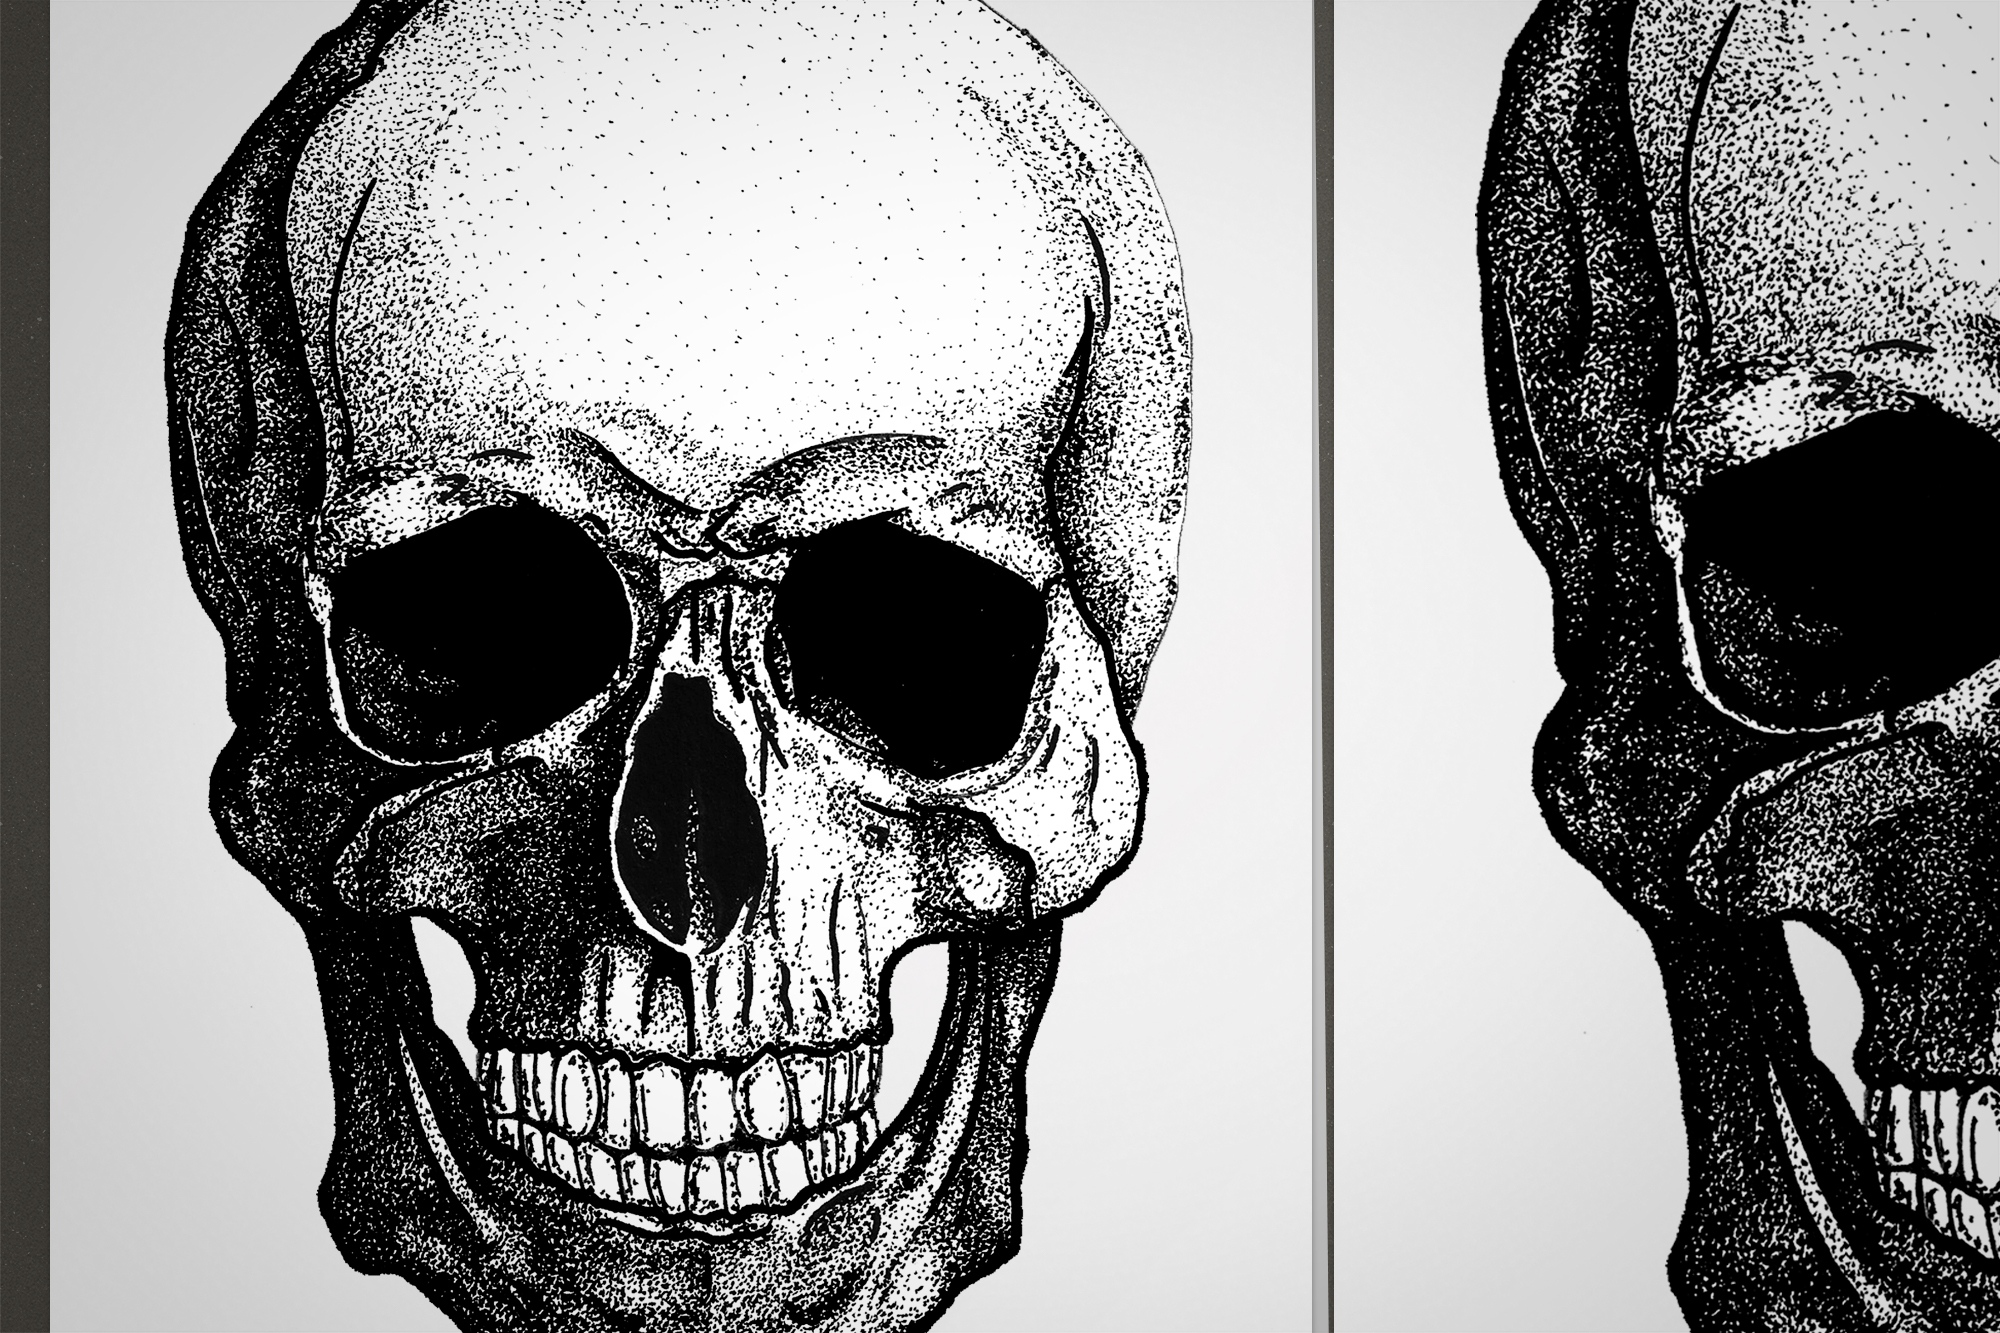 Skull's Head Illustration detail of pointilism and black stains